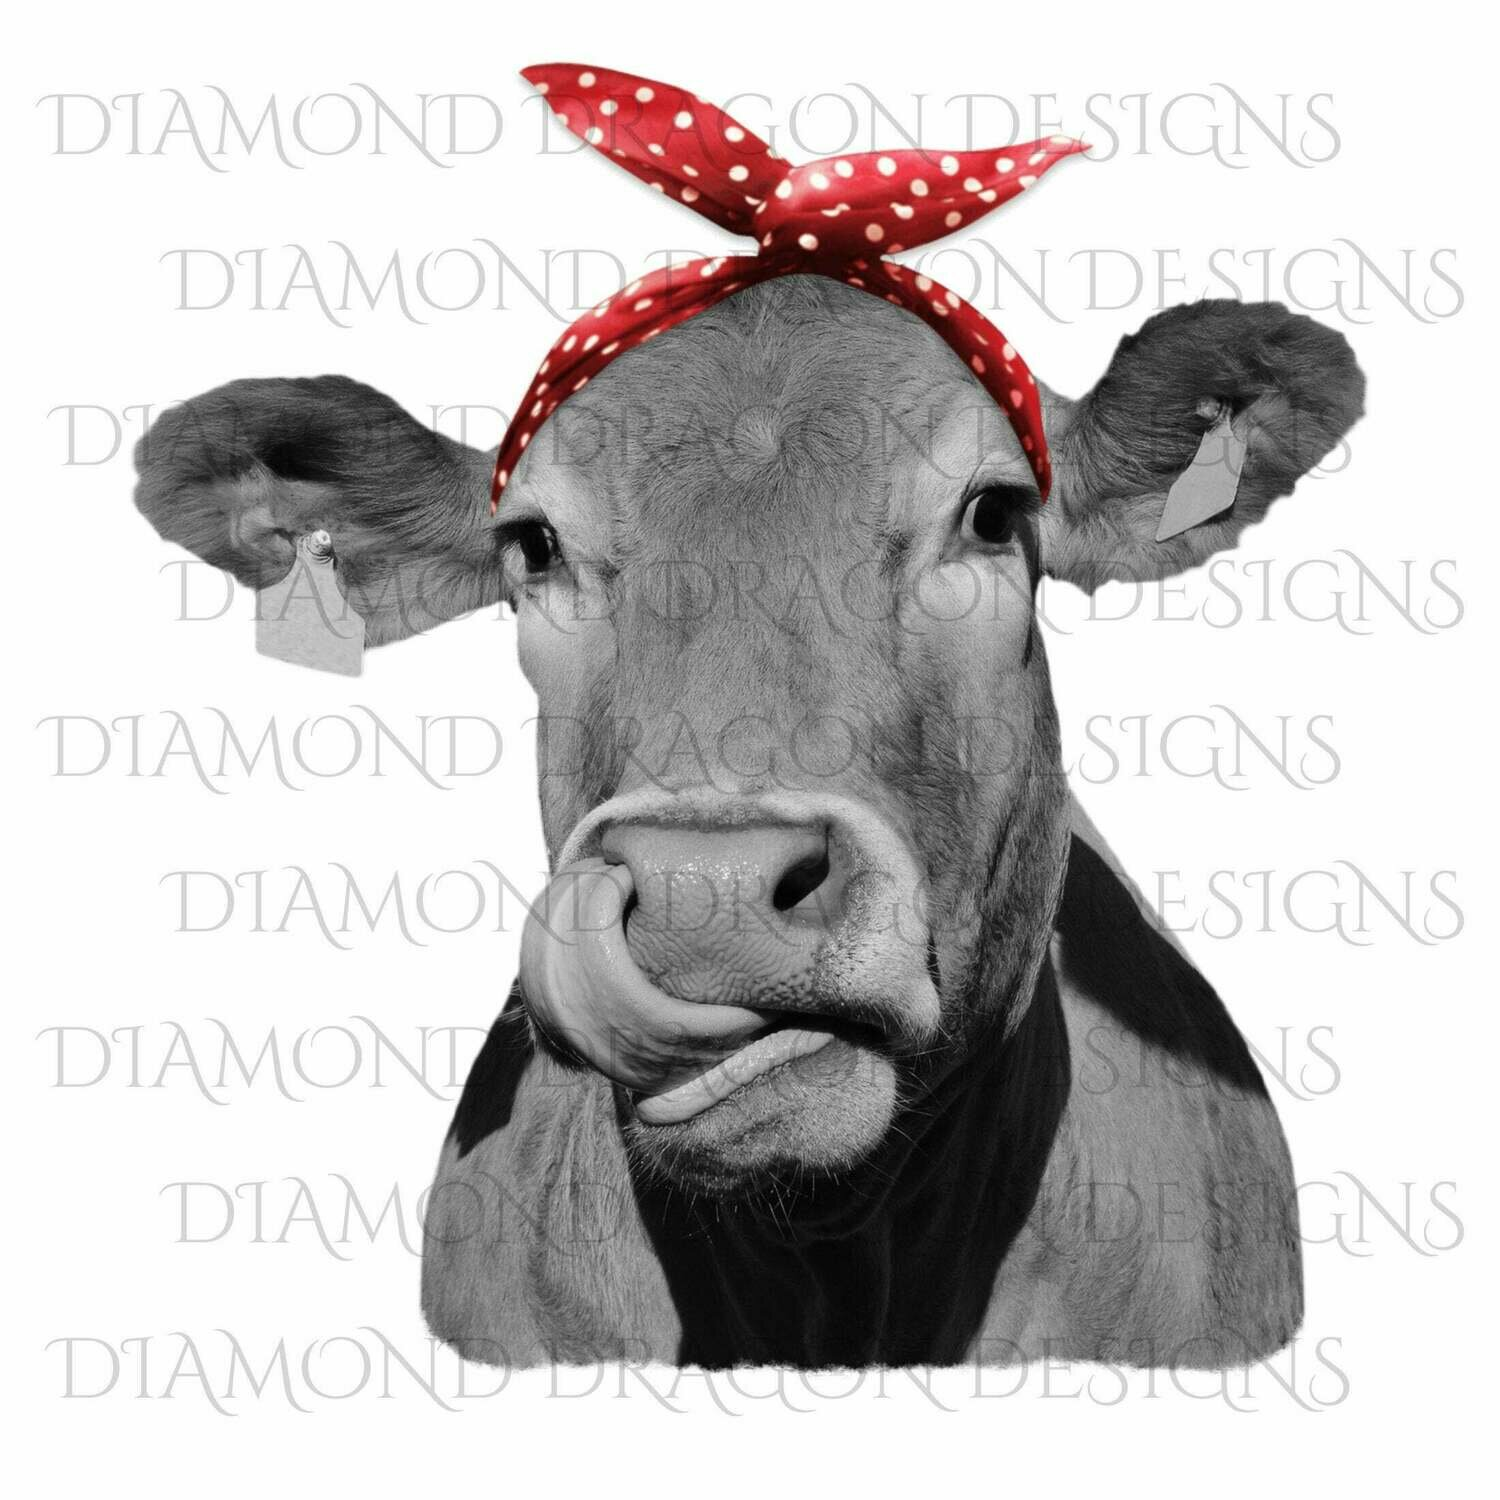 Cows - Heifer, Cute Cow with Red Polkadot Bandana, Cowlick, Cow Tongue Out, Digital Image